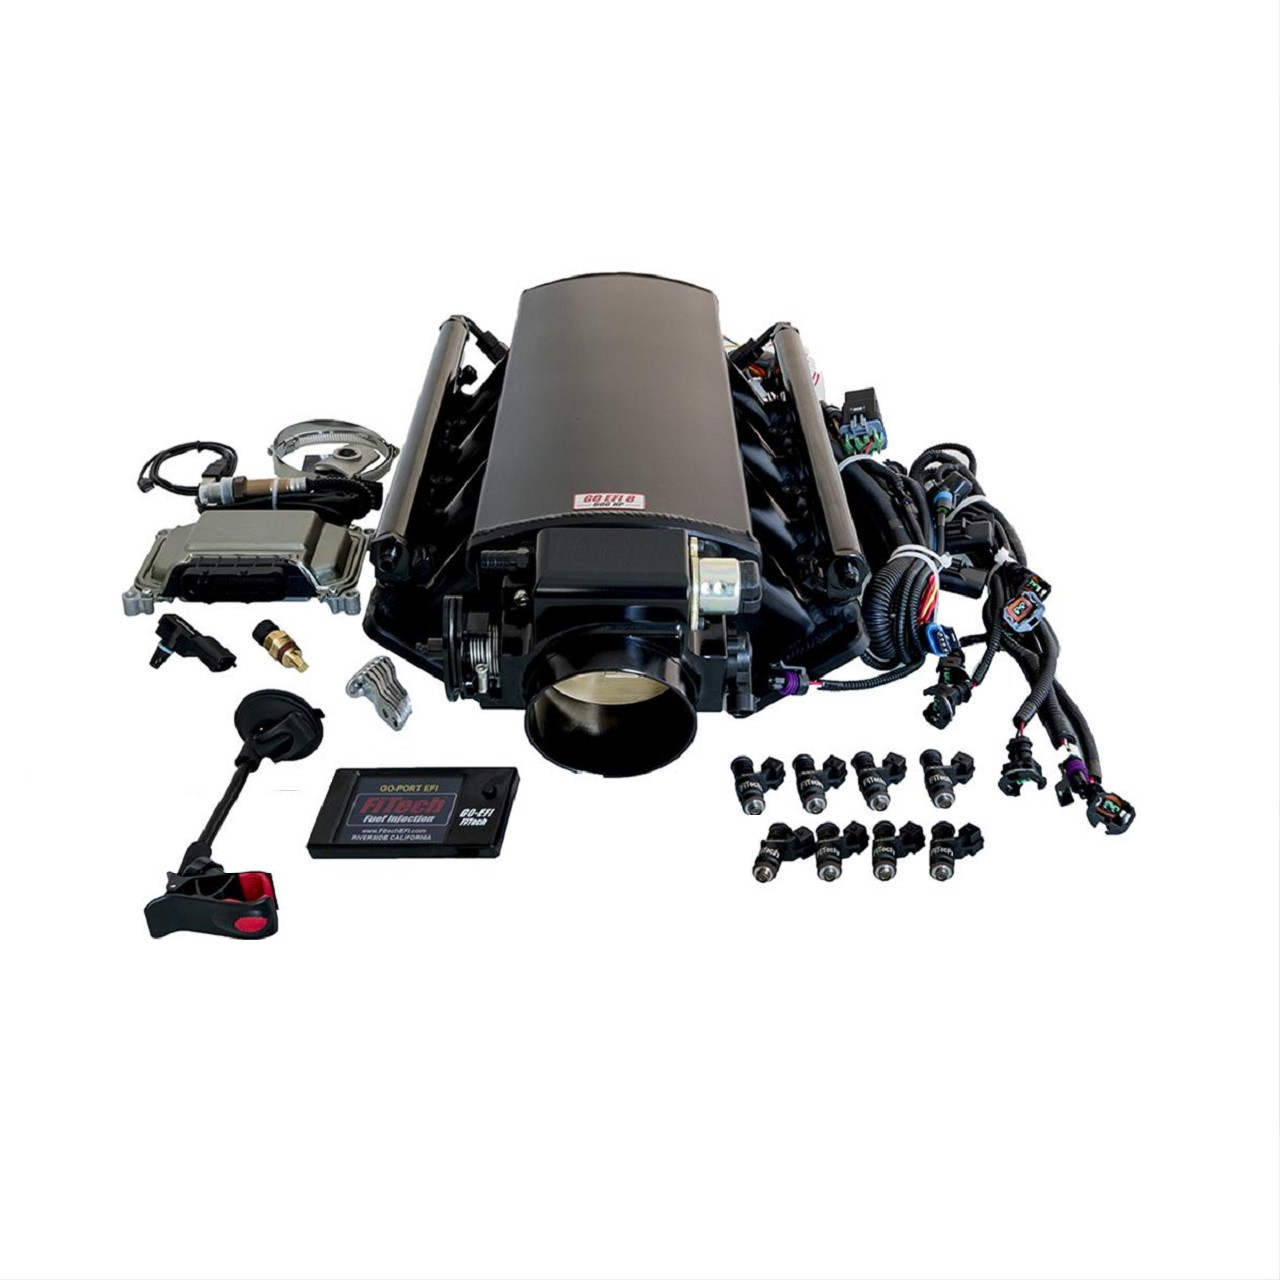 FiTech 500HP LS1/LS2/LS6 92mm Ultimate EFI System w/ Transmission Control on